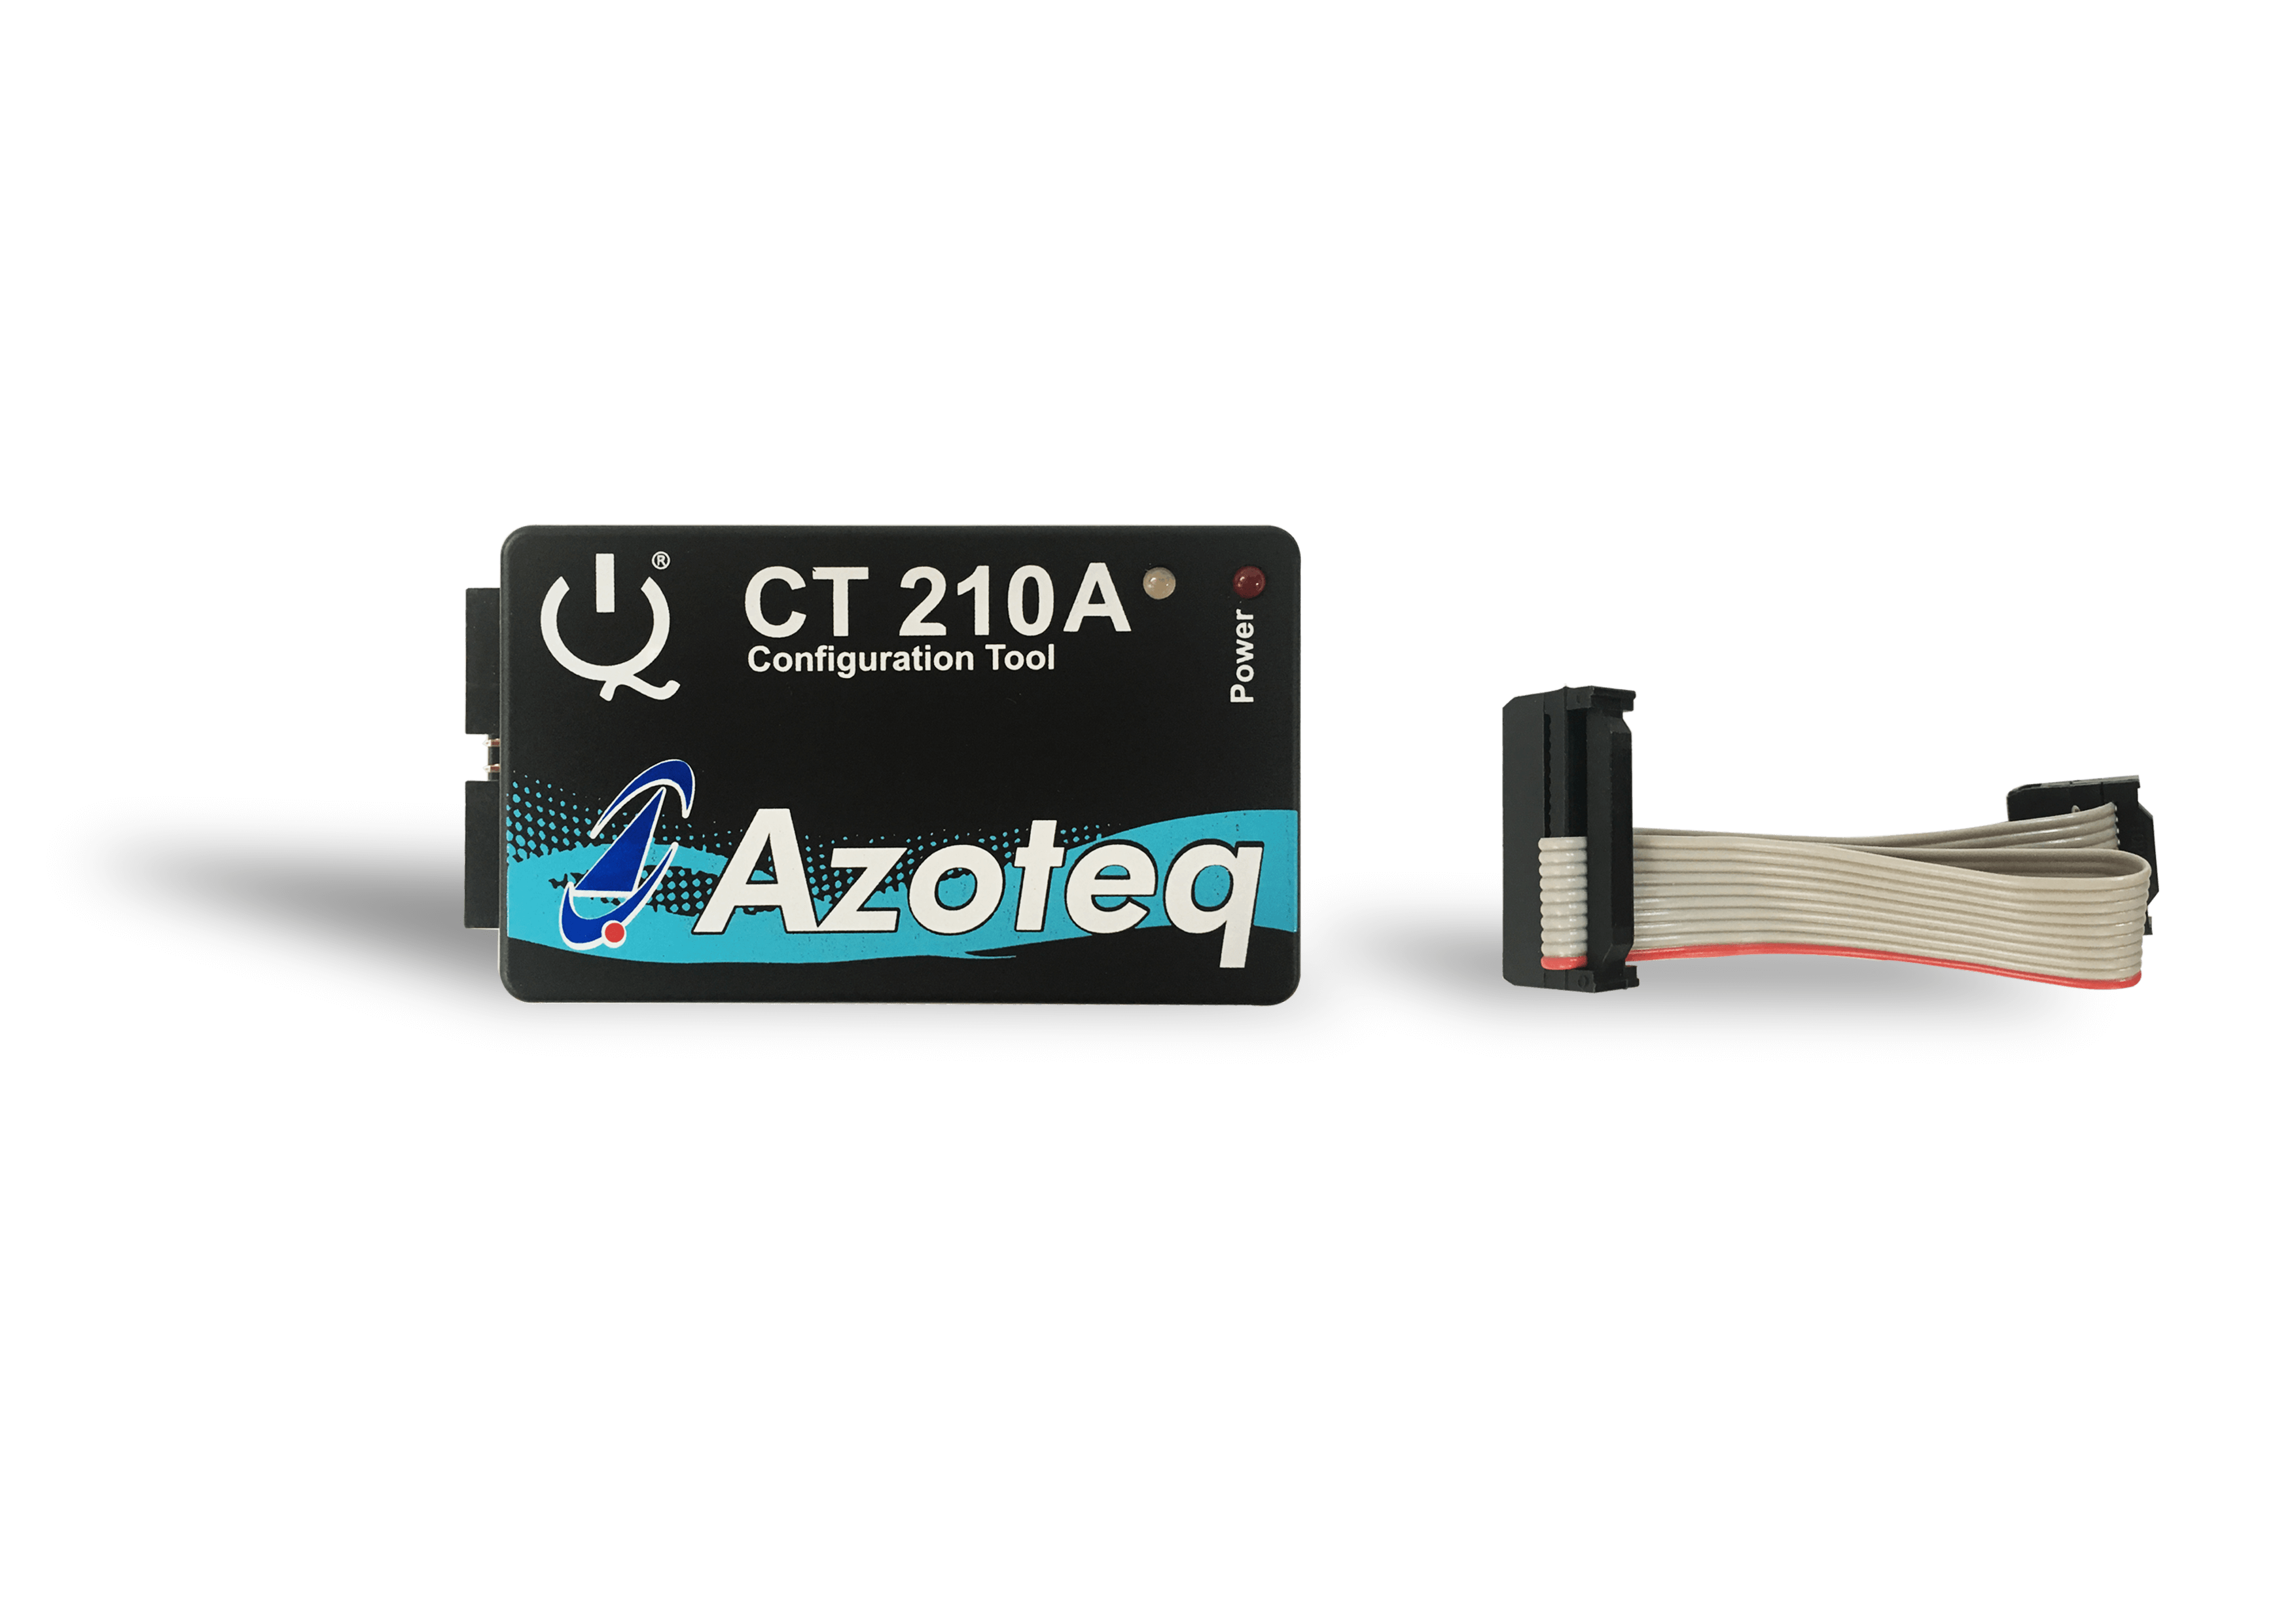 Ct210a